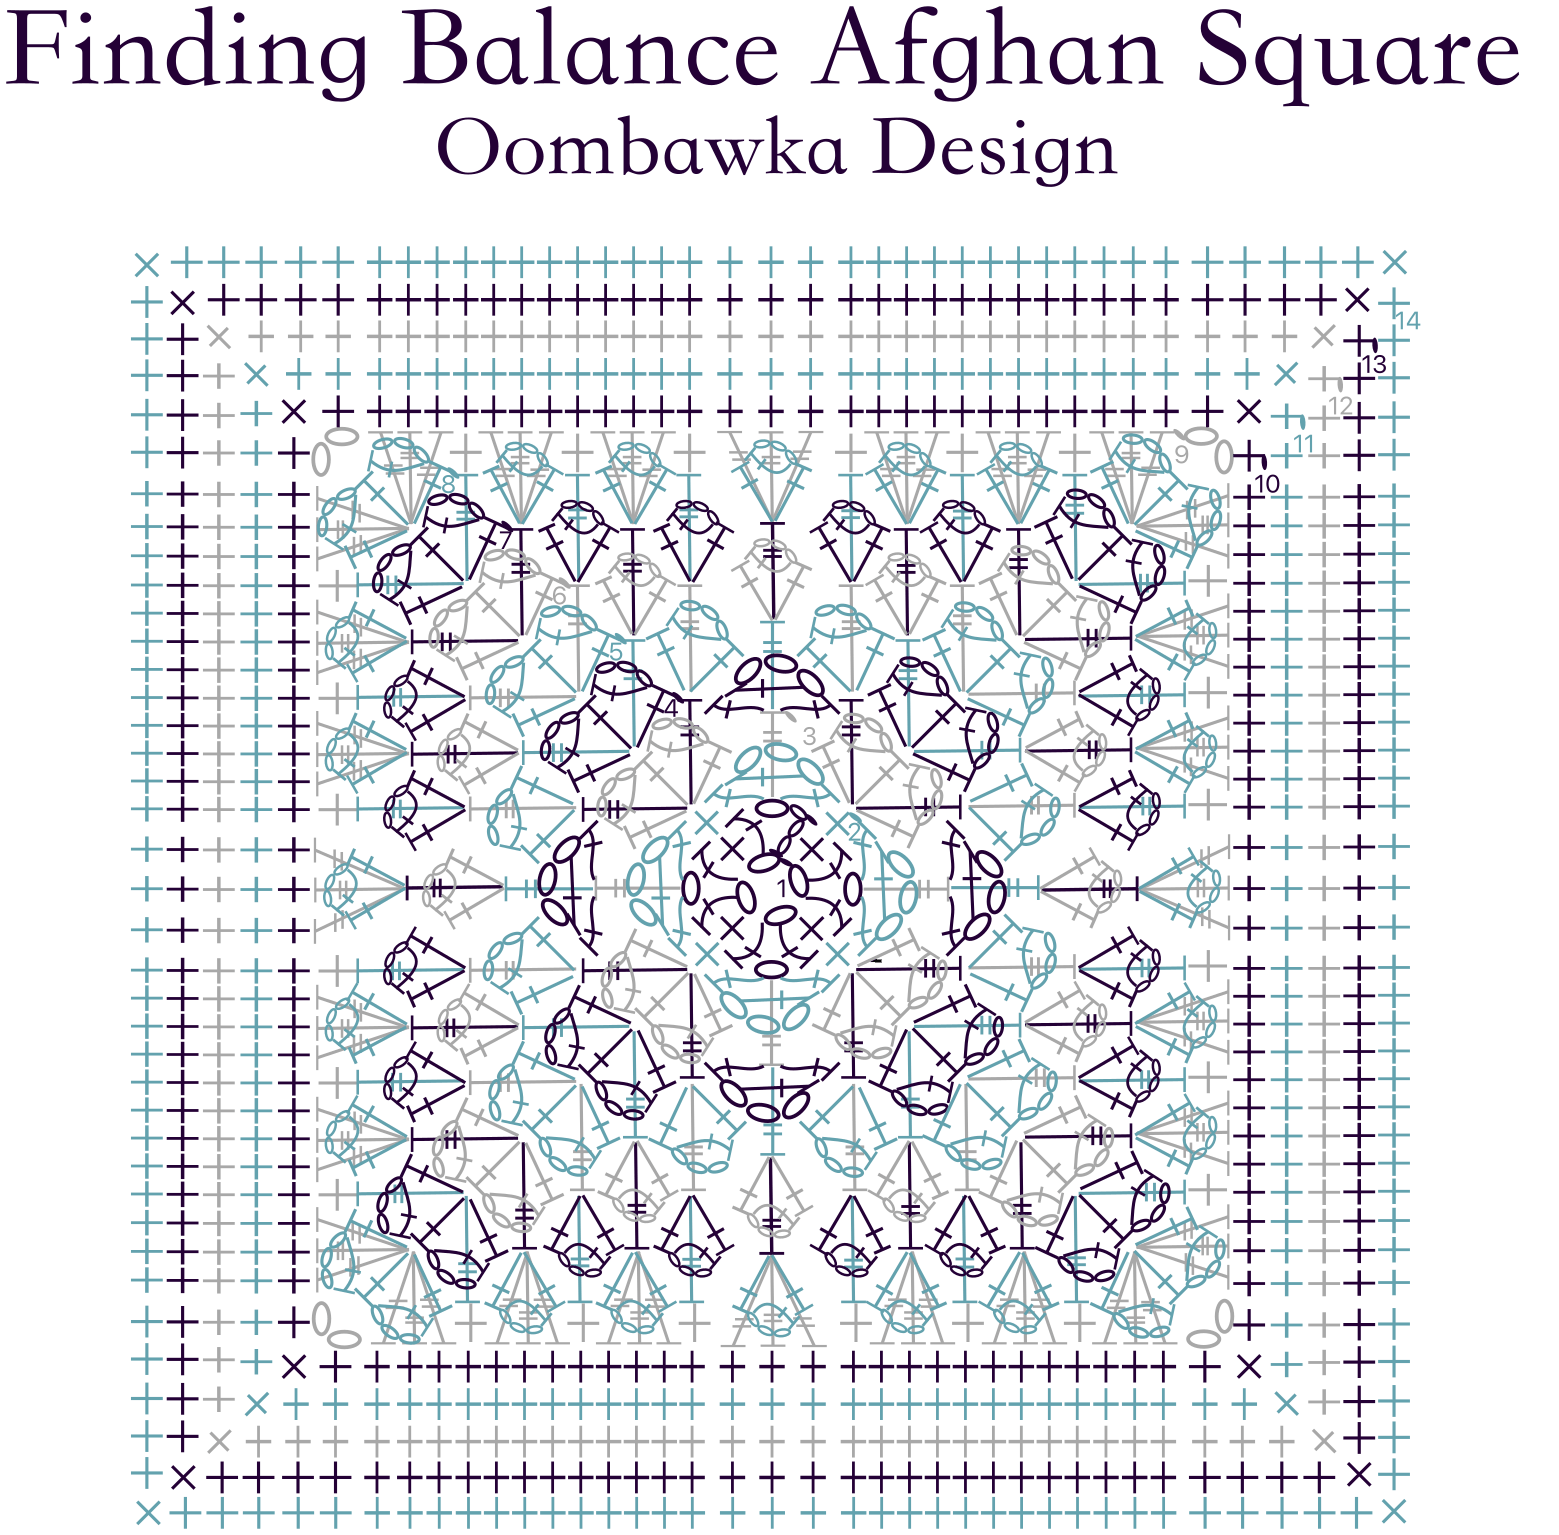 Finding Balance Afghan Square Pattern. Original Design by Rhondda Mol Oombawka Design Crochet 2019